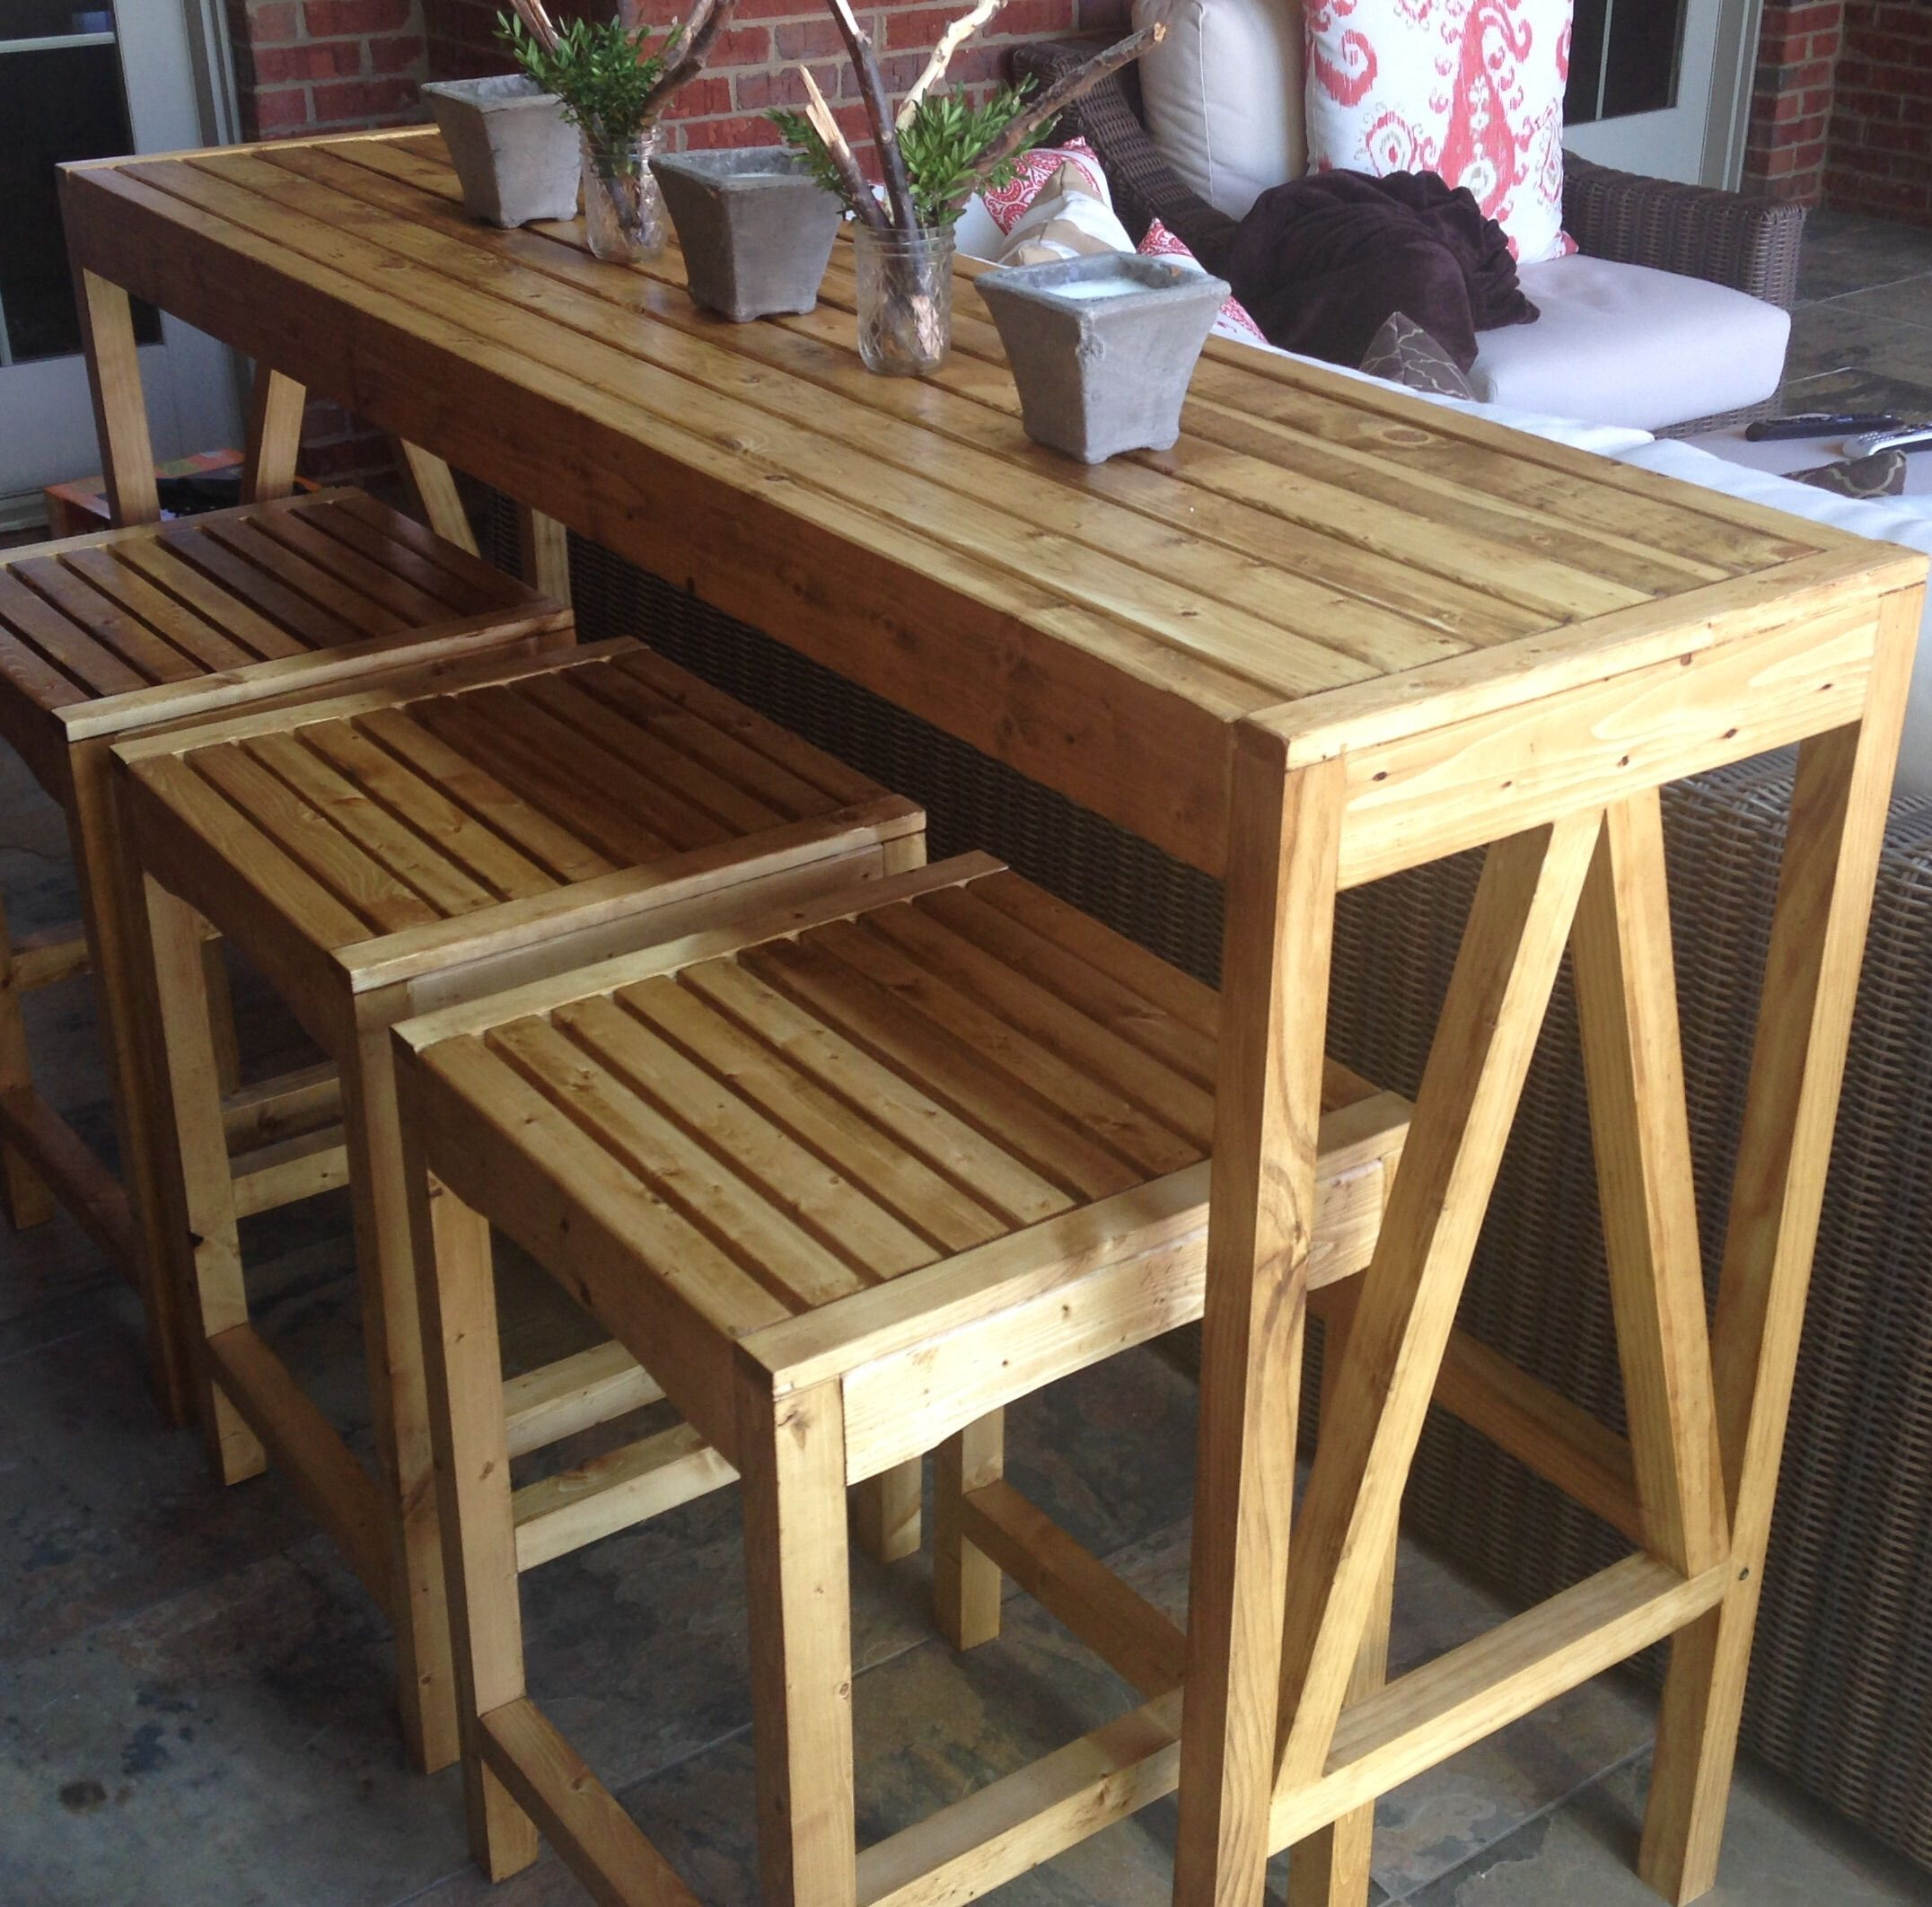 Build Your Own DIY Sutton Custom Outdoor Bar Stools With This Step By Step  Tutorial Via